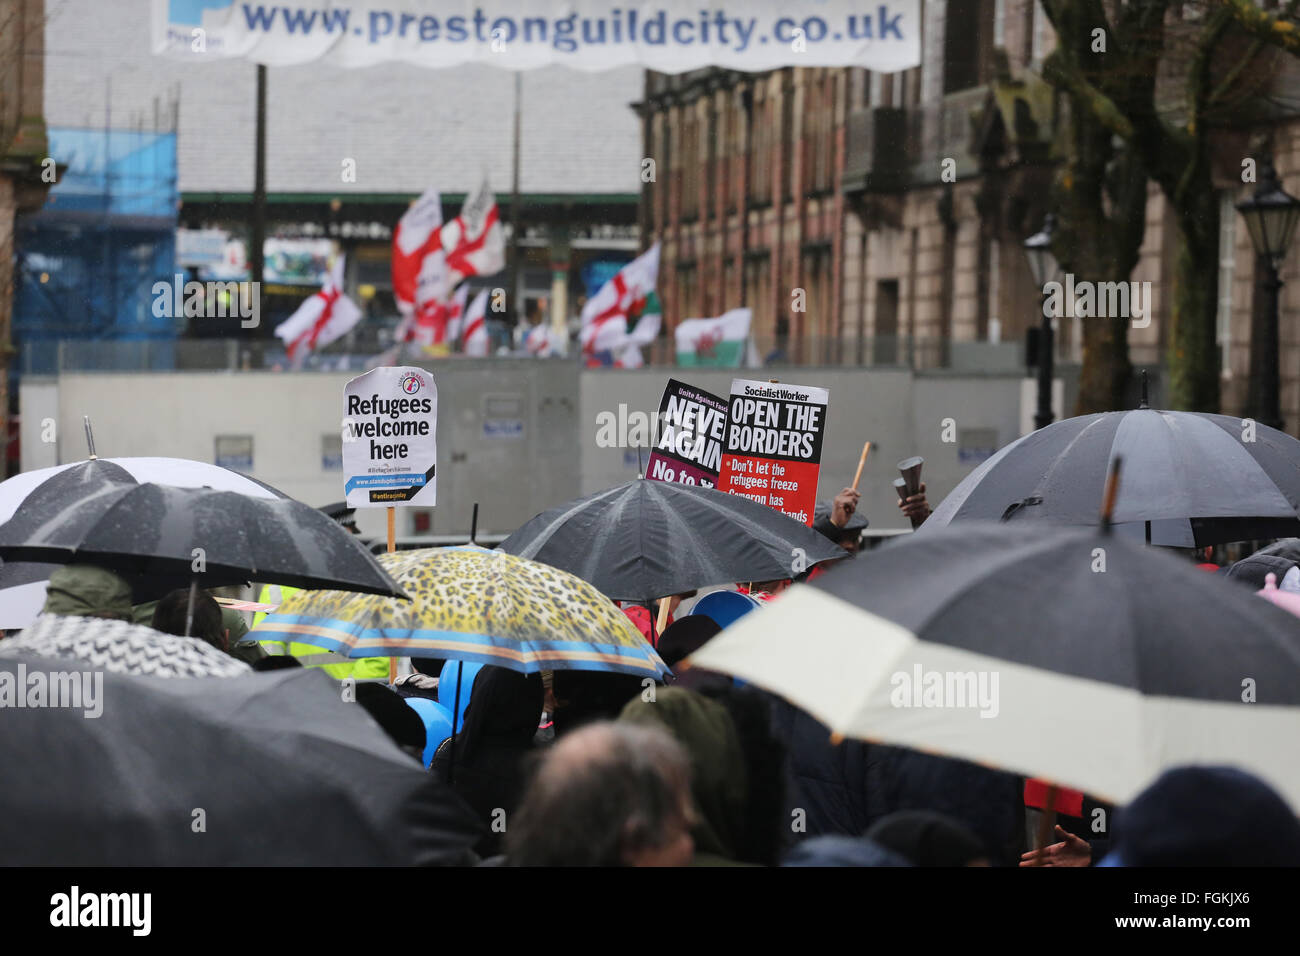 Preston, Lancashire, UK. 20th February, 2016. EDL protest in Preston, UK. Umbrellas held up alongside placards which - Stock Image